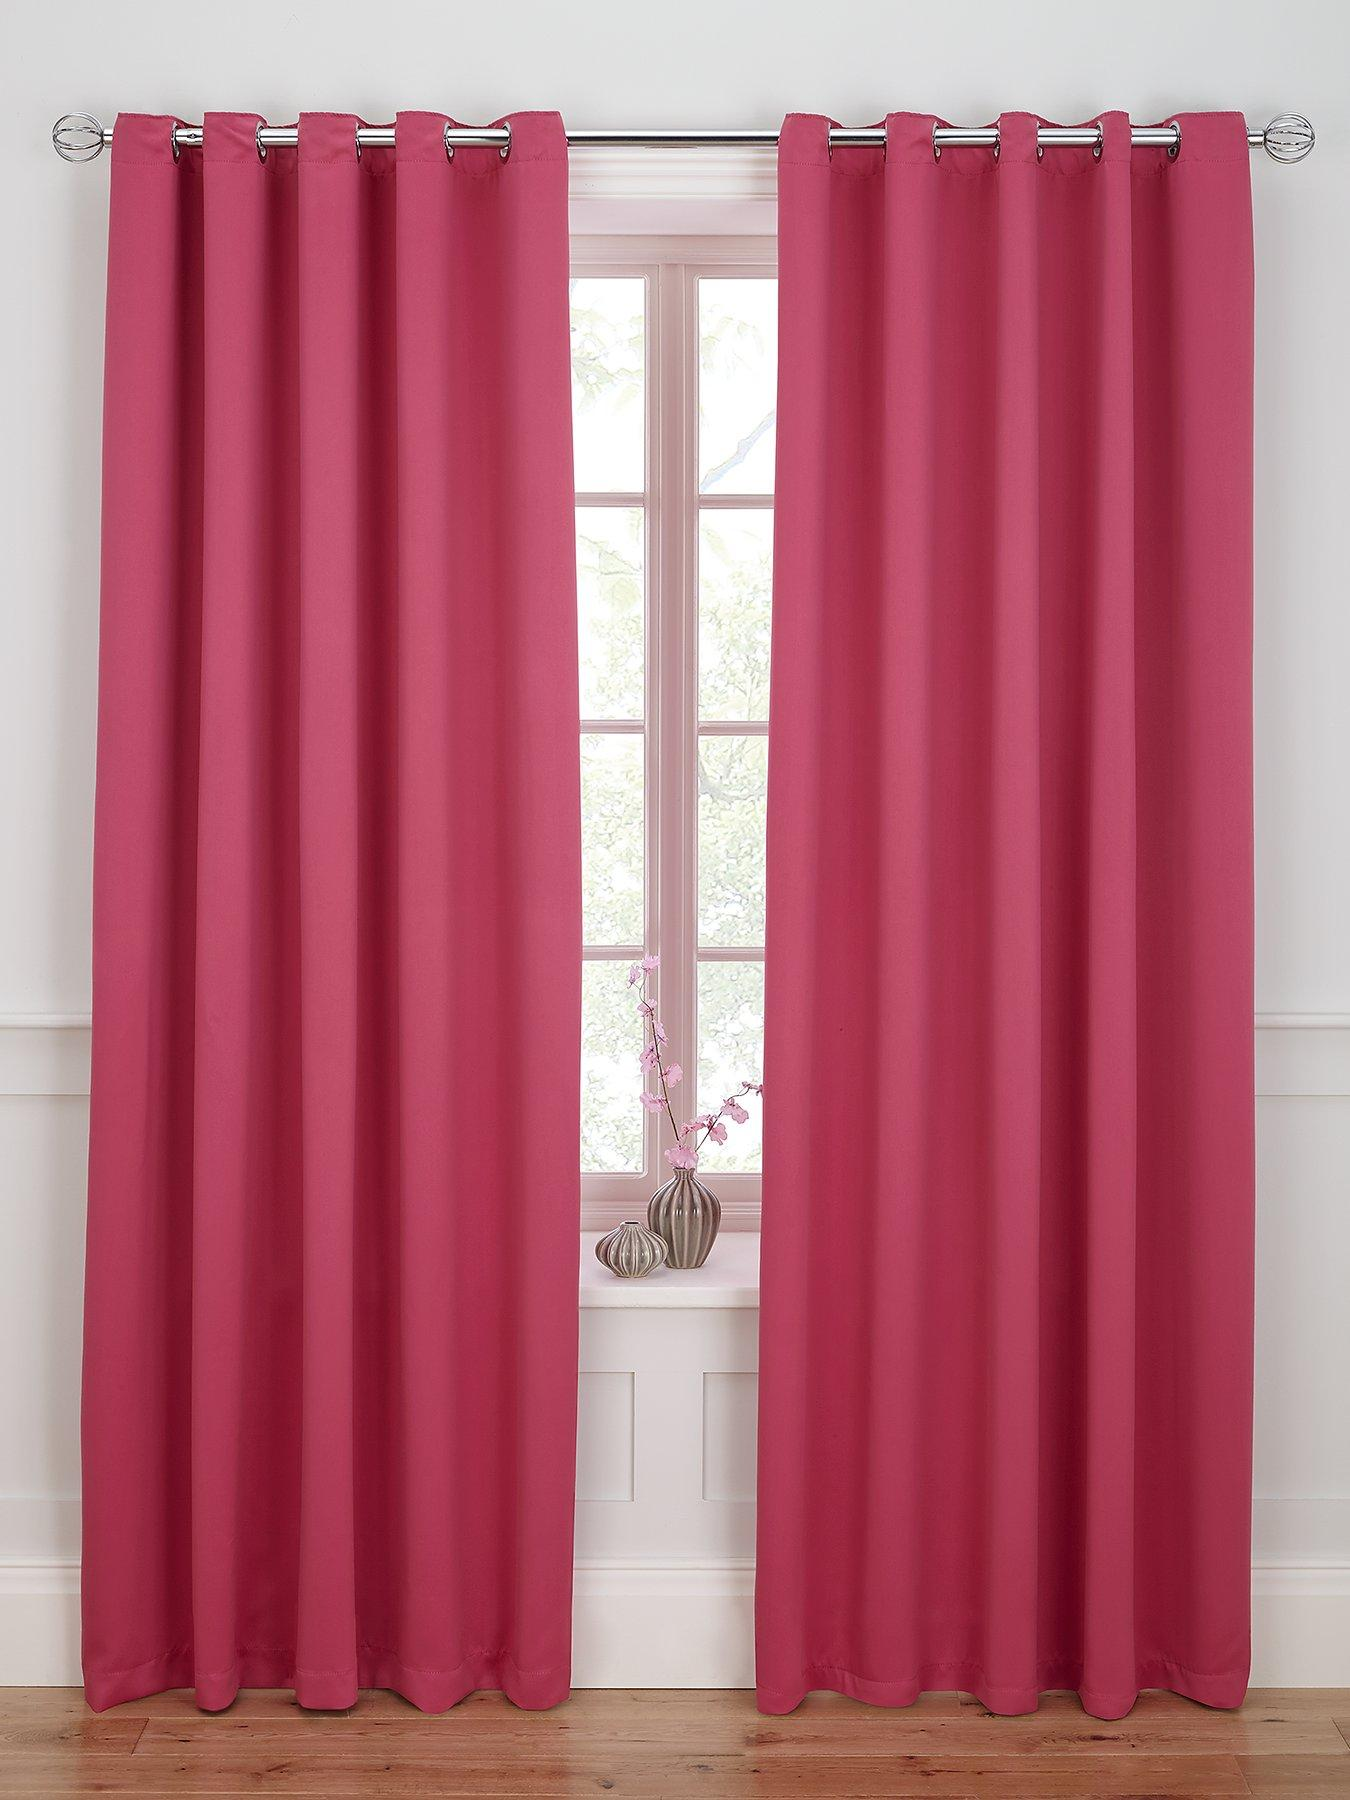 168cm X 183cm Eyelet Ring Top Curtains New York Aubergine 66 X 72 A2btravel Ge